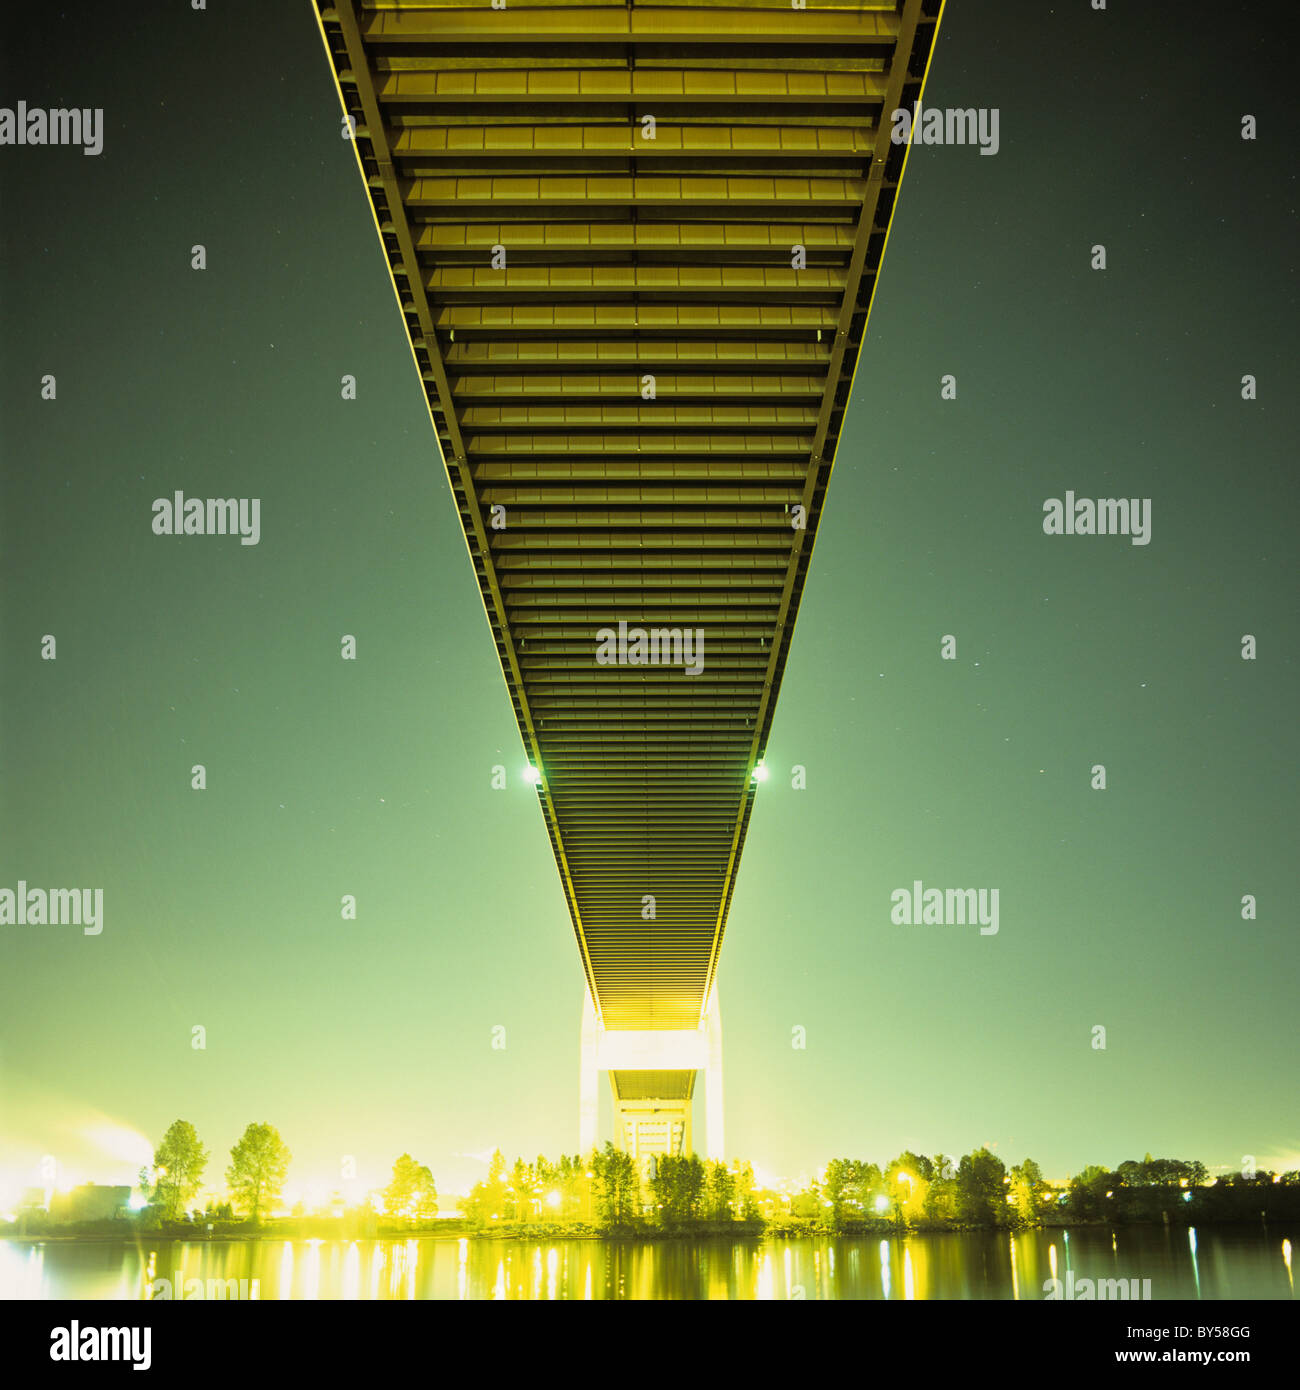 A bridge at night - Stock Image